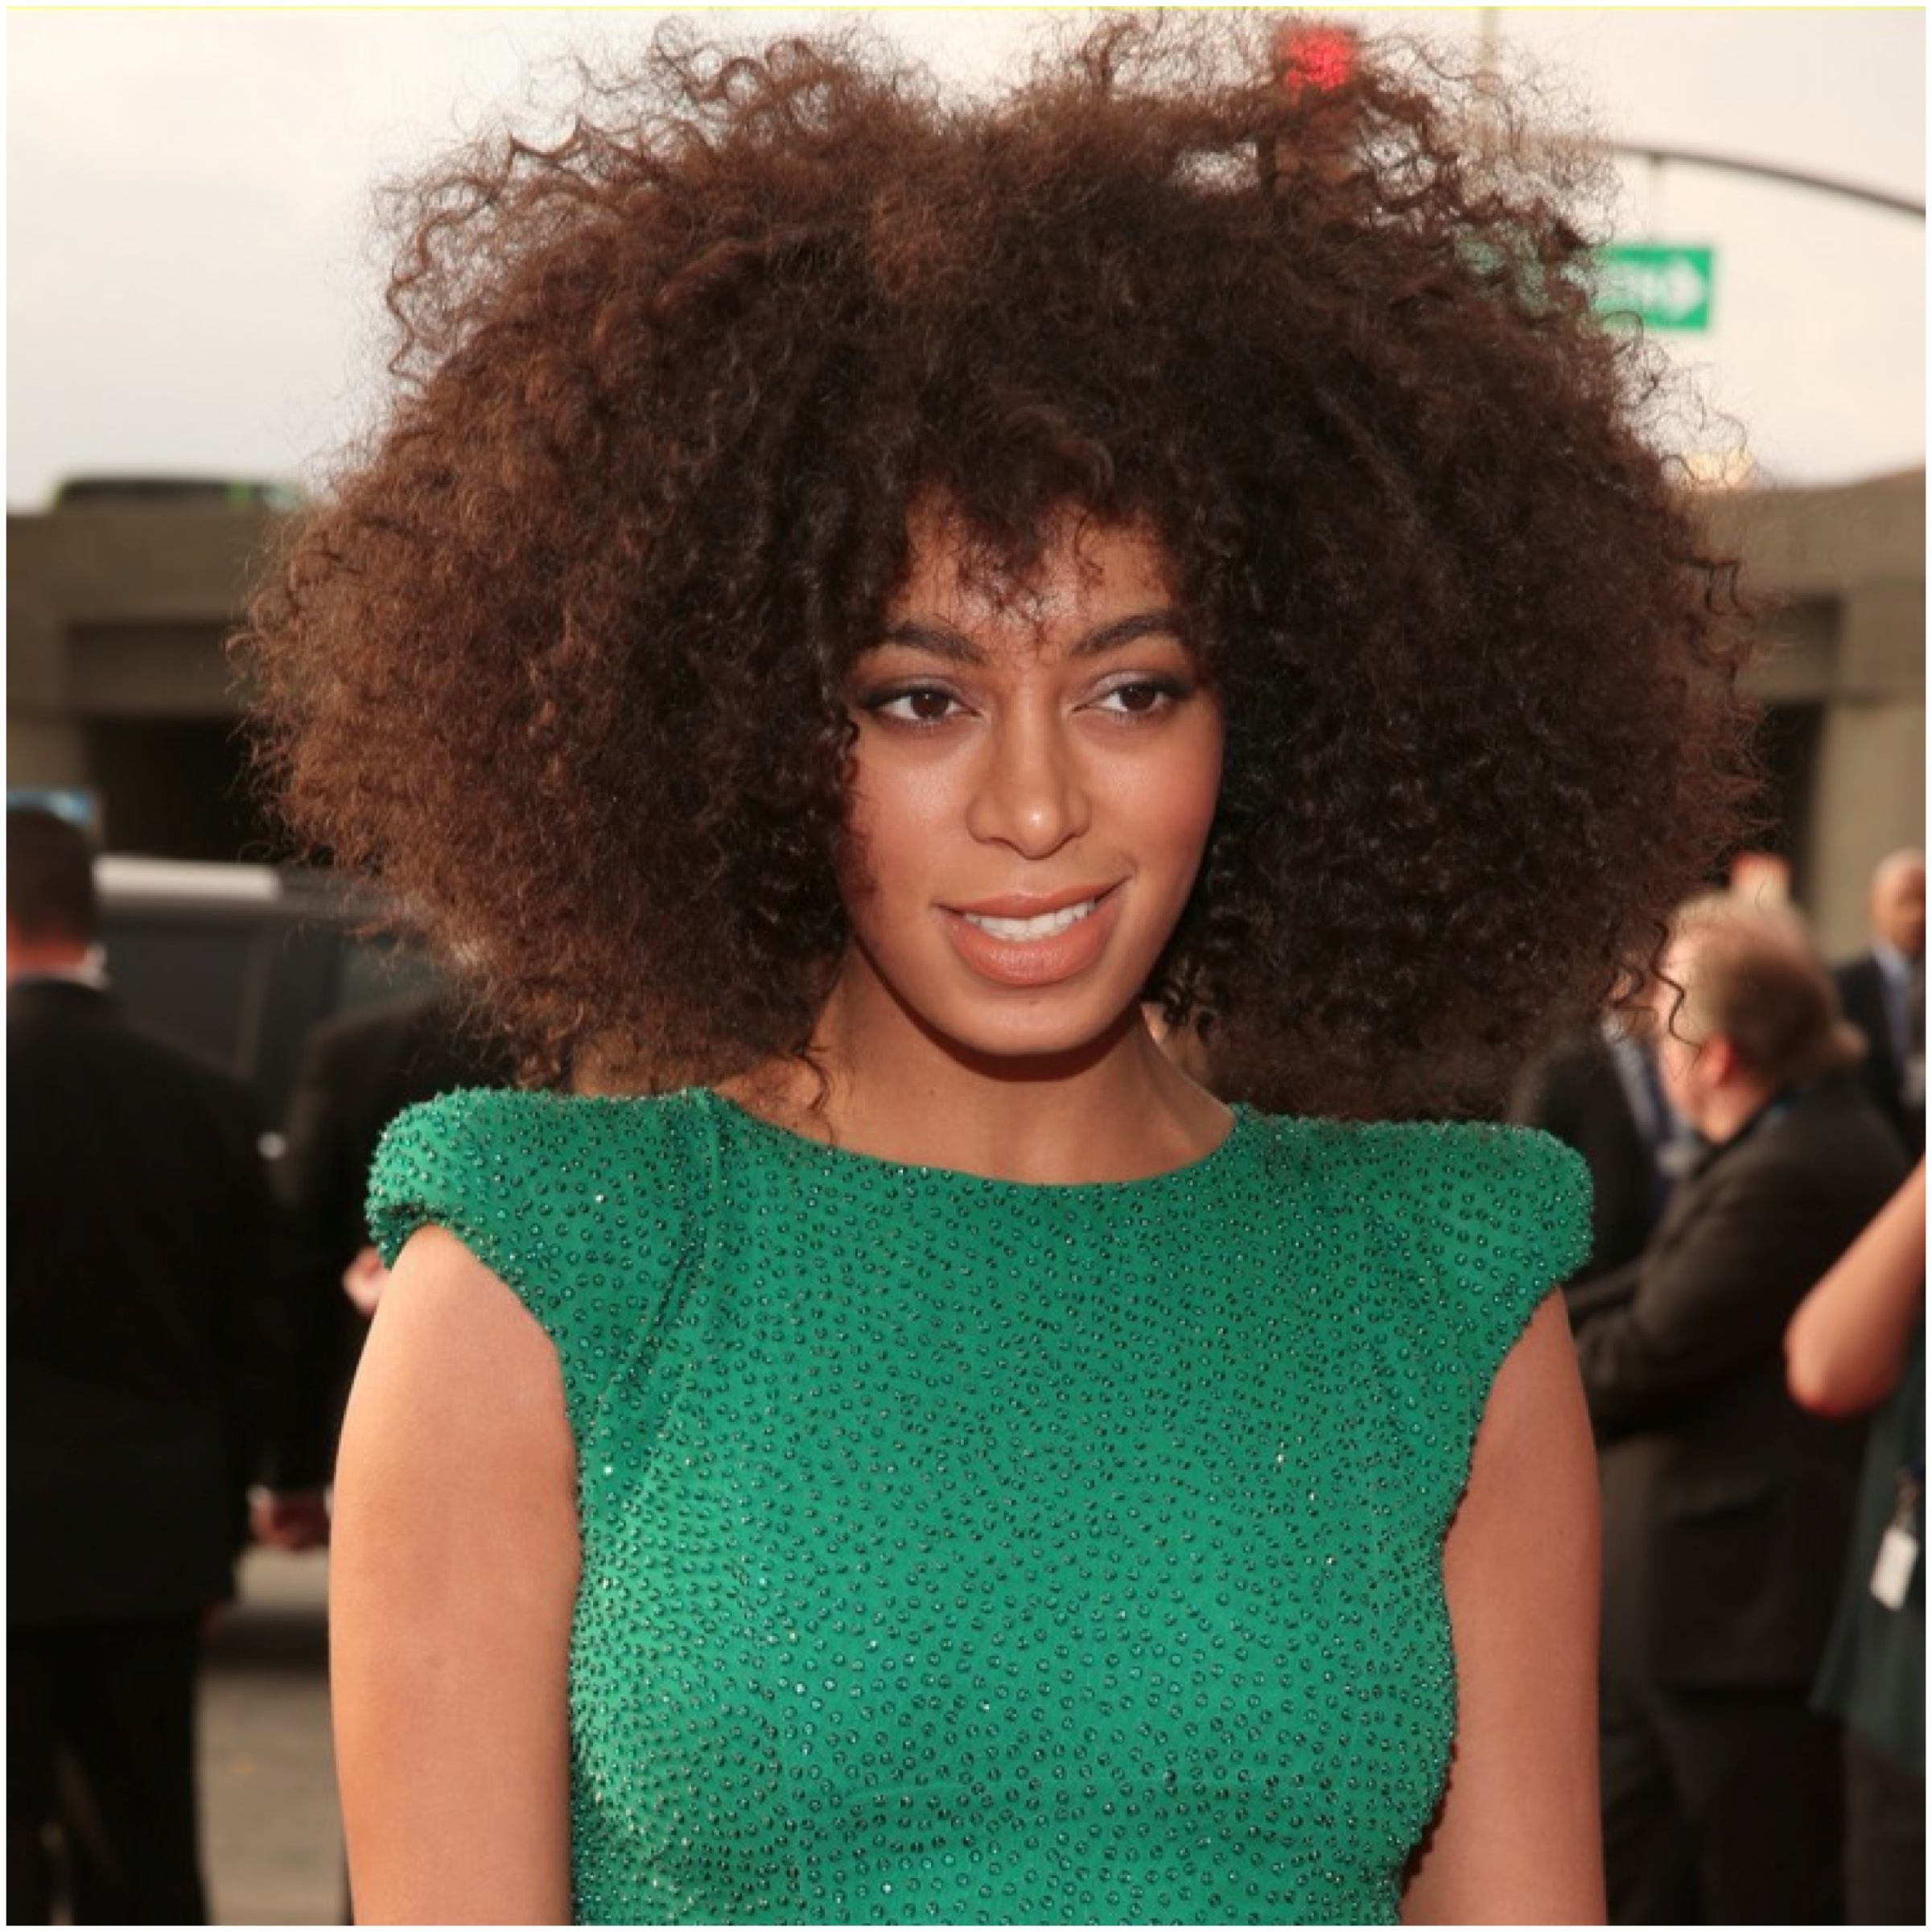 Solange Knowles Solange Knowles new foto